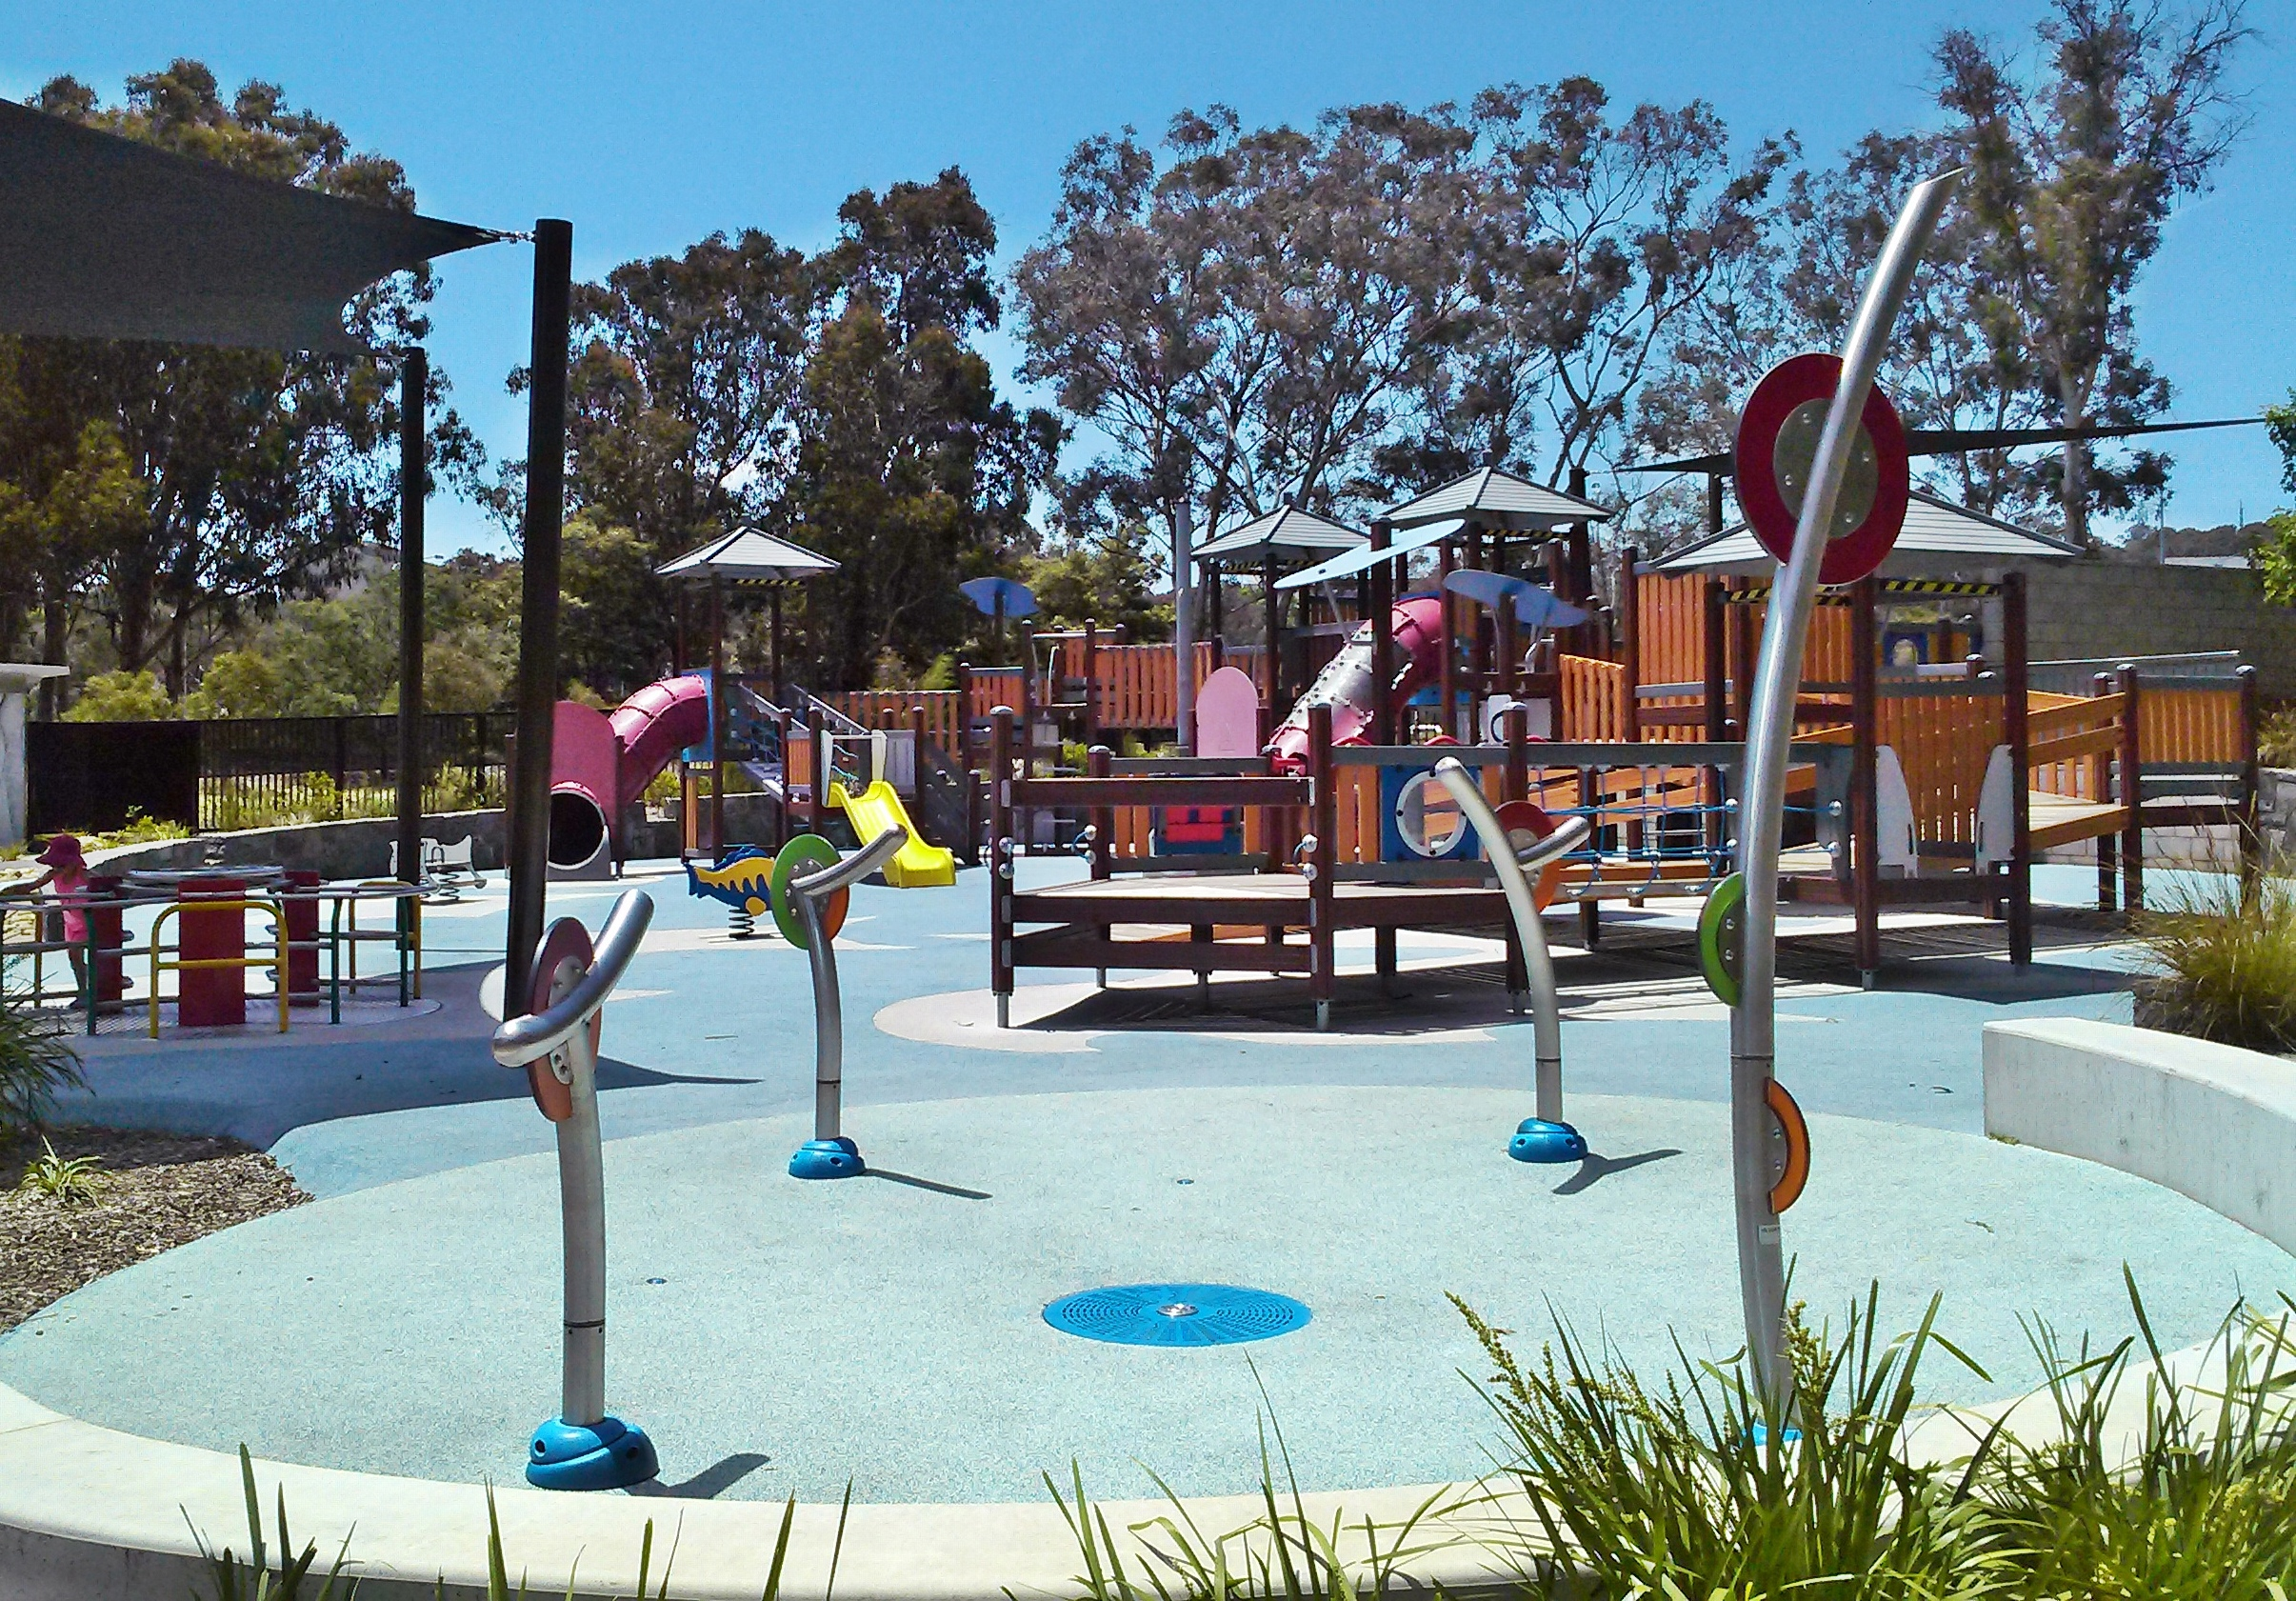 Kids Splash Parks and Water Play in Canberra - Canberra